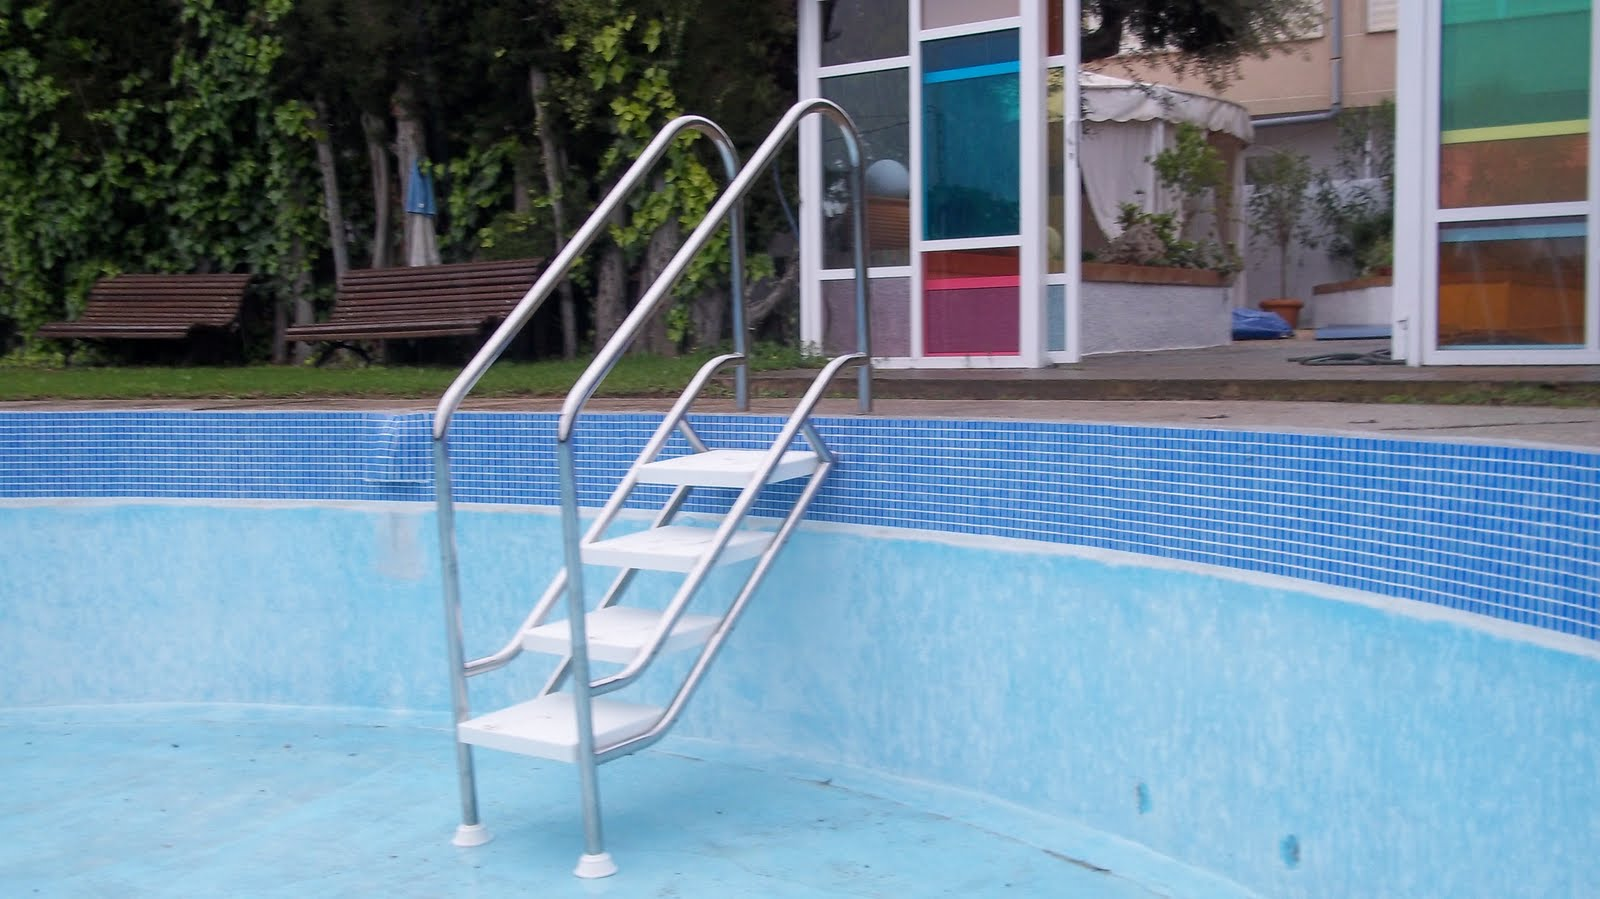 El carmol escalera piscina for Escaleras piscina para personas mayores